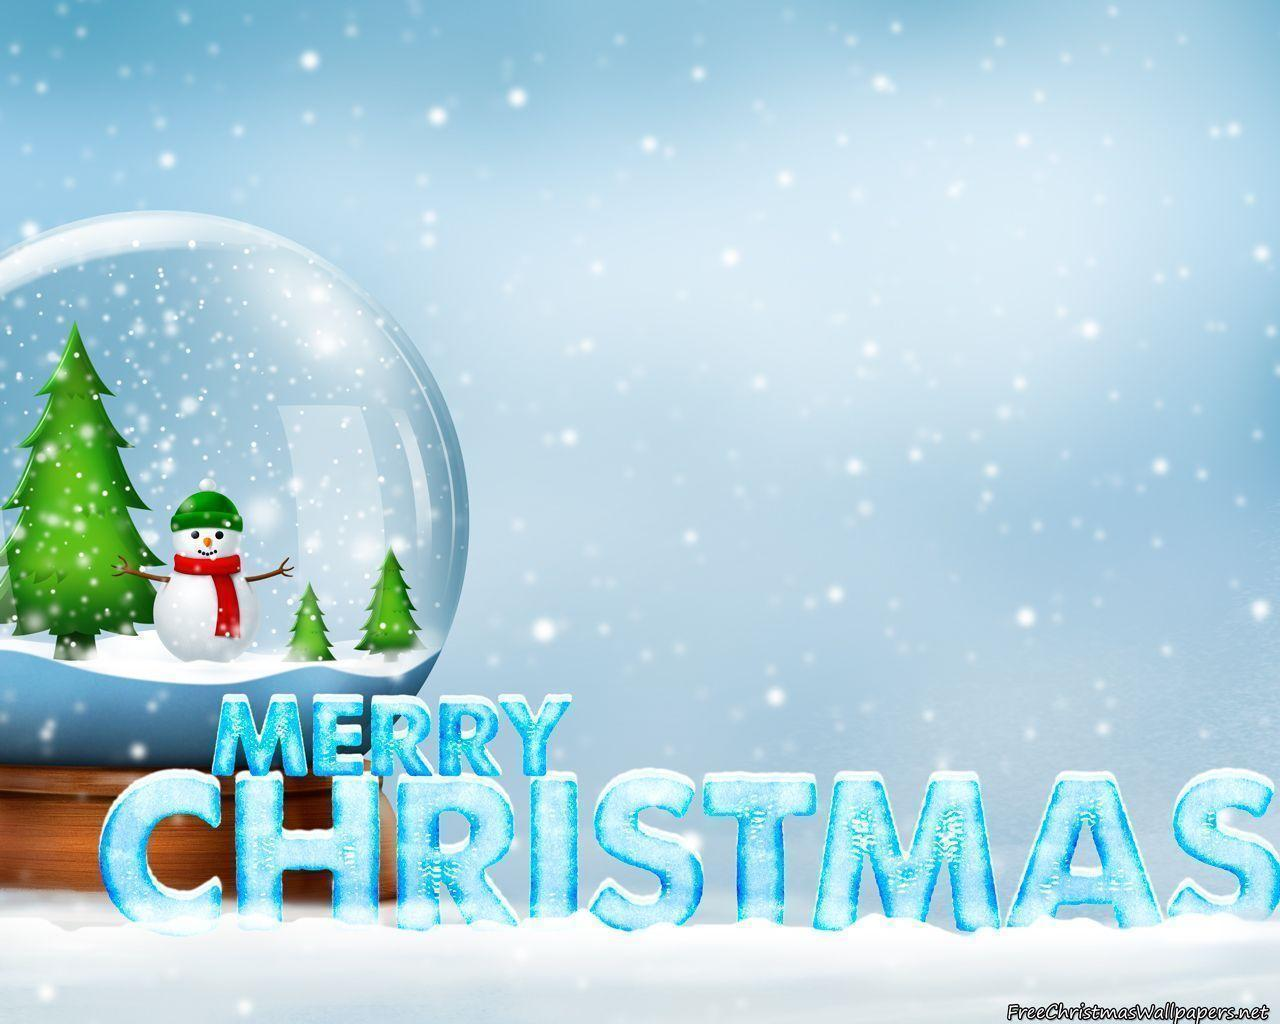 Cute merry christmas wallpaper backgrounds